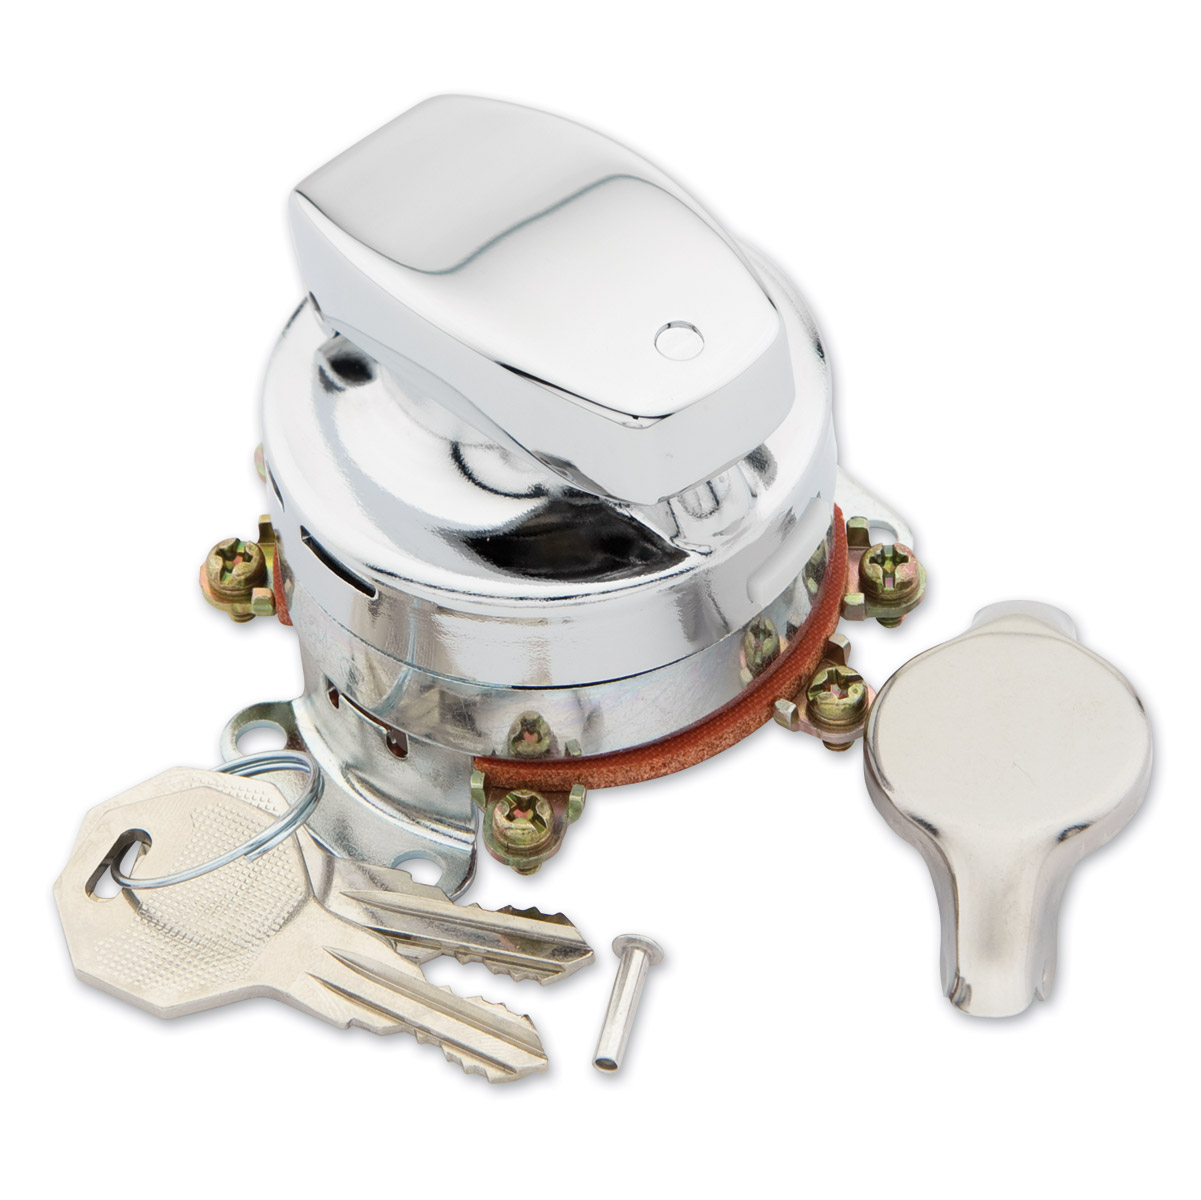 j&p cycles� heavy-duty electronic ignition switch